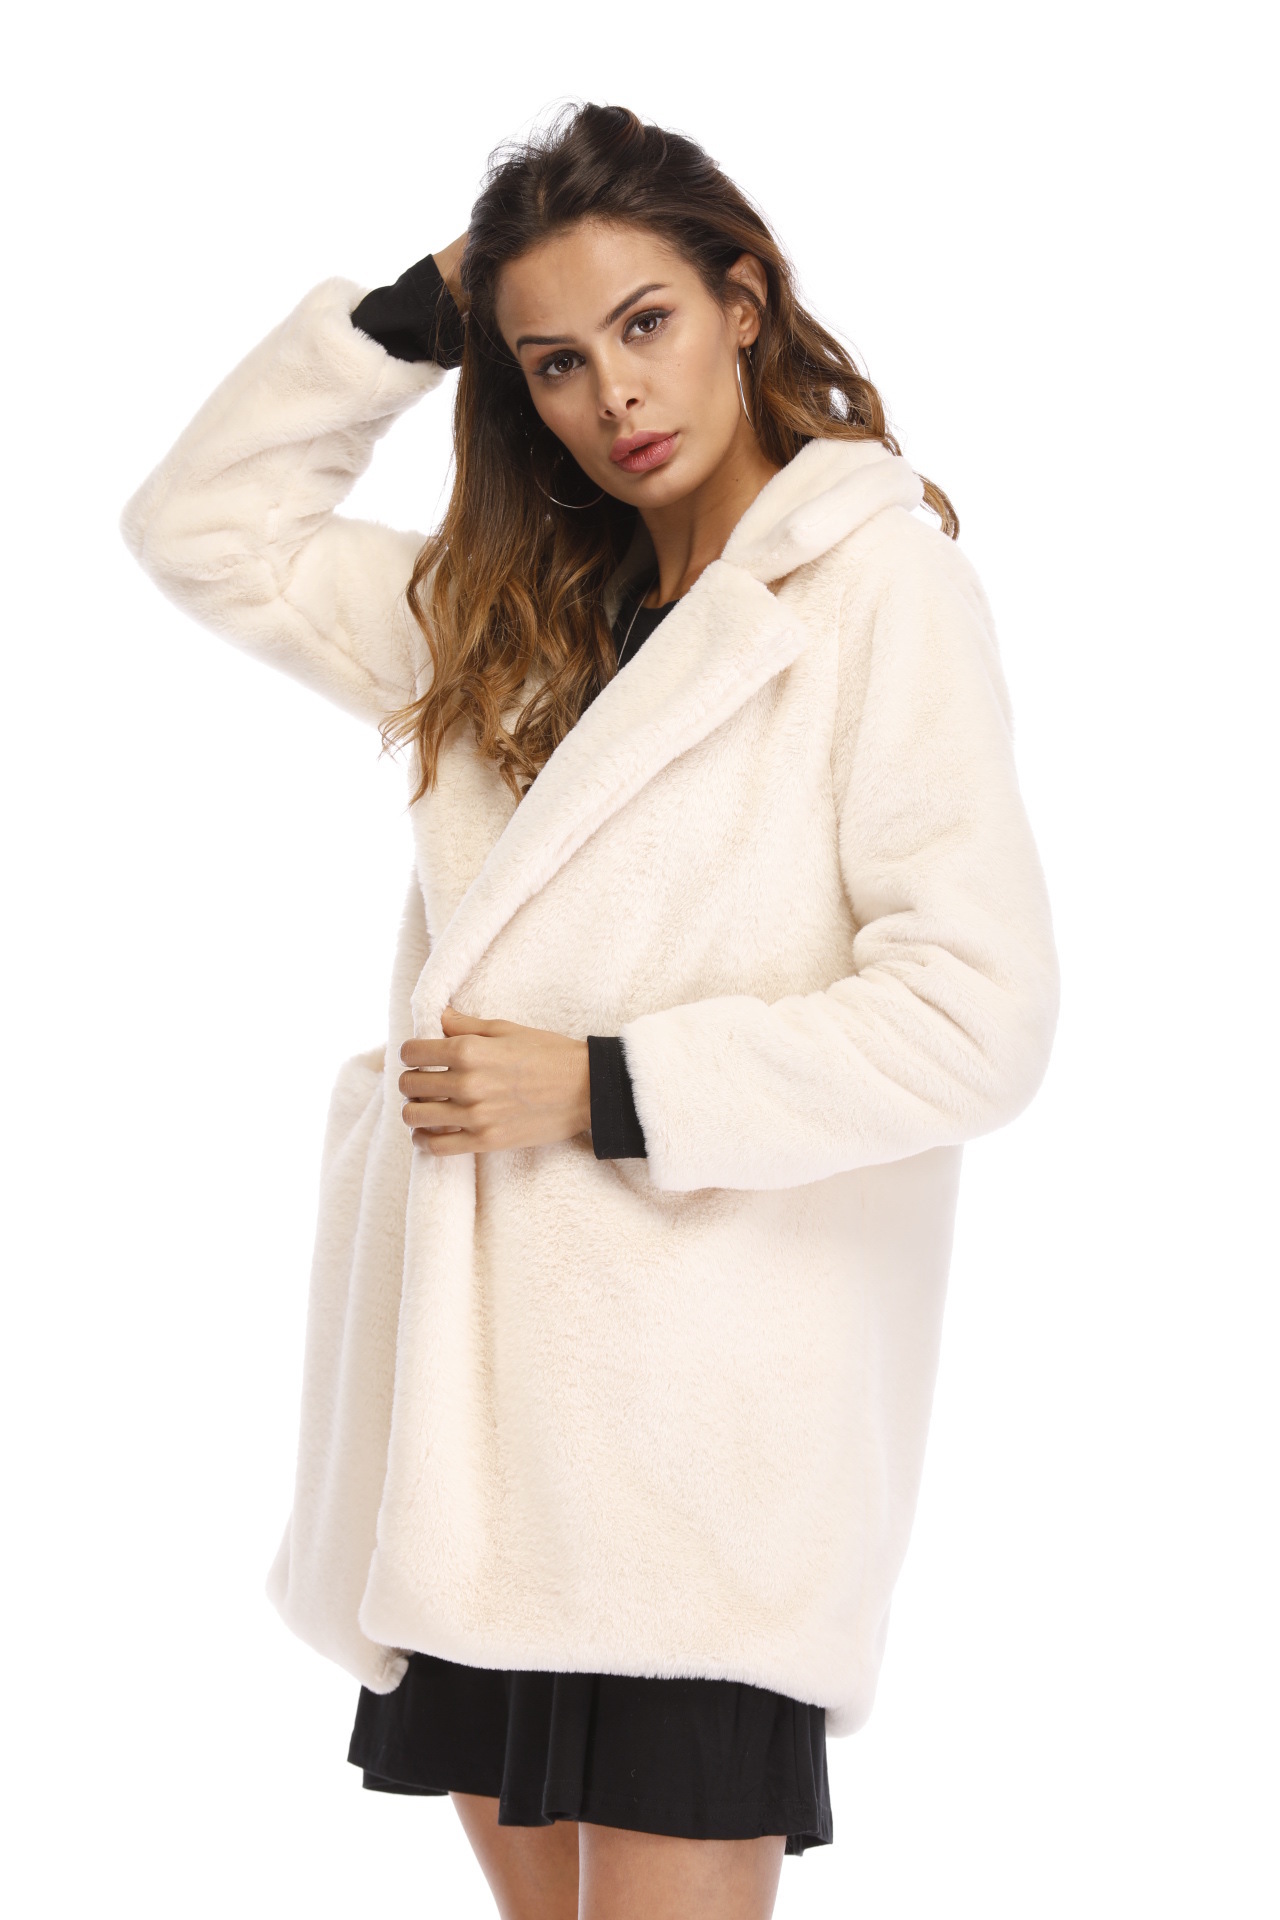 hot Oversize Autumn pink white Coat 4xl Clothing 3xl Female Beige Faux Fashion Pink Windproof gray Jacket Collar Fur Winter Turn blue down Warm Outcoat Casual black red yellow xZFIw